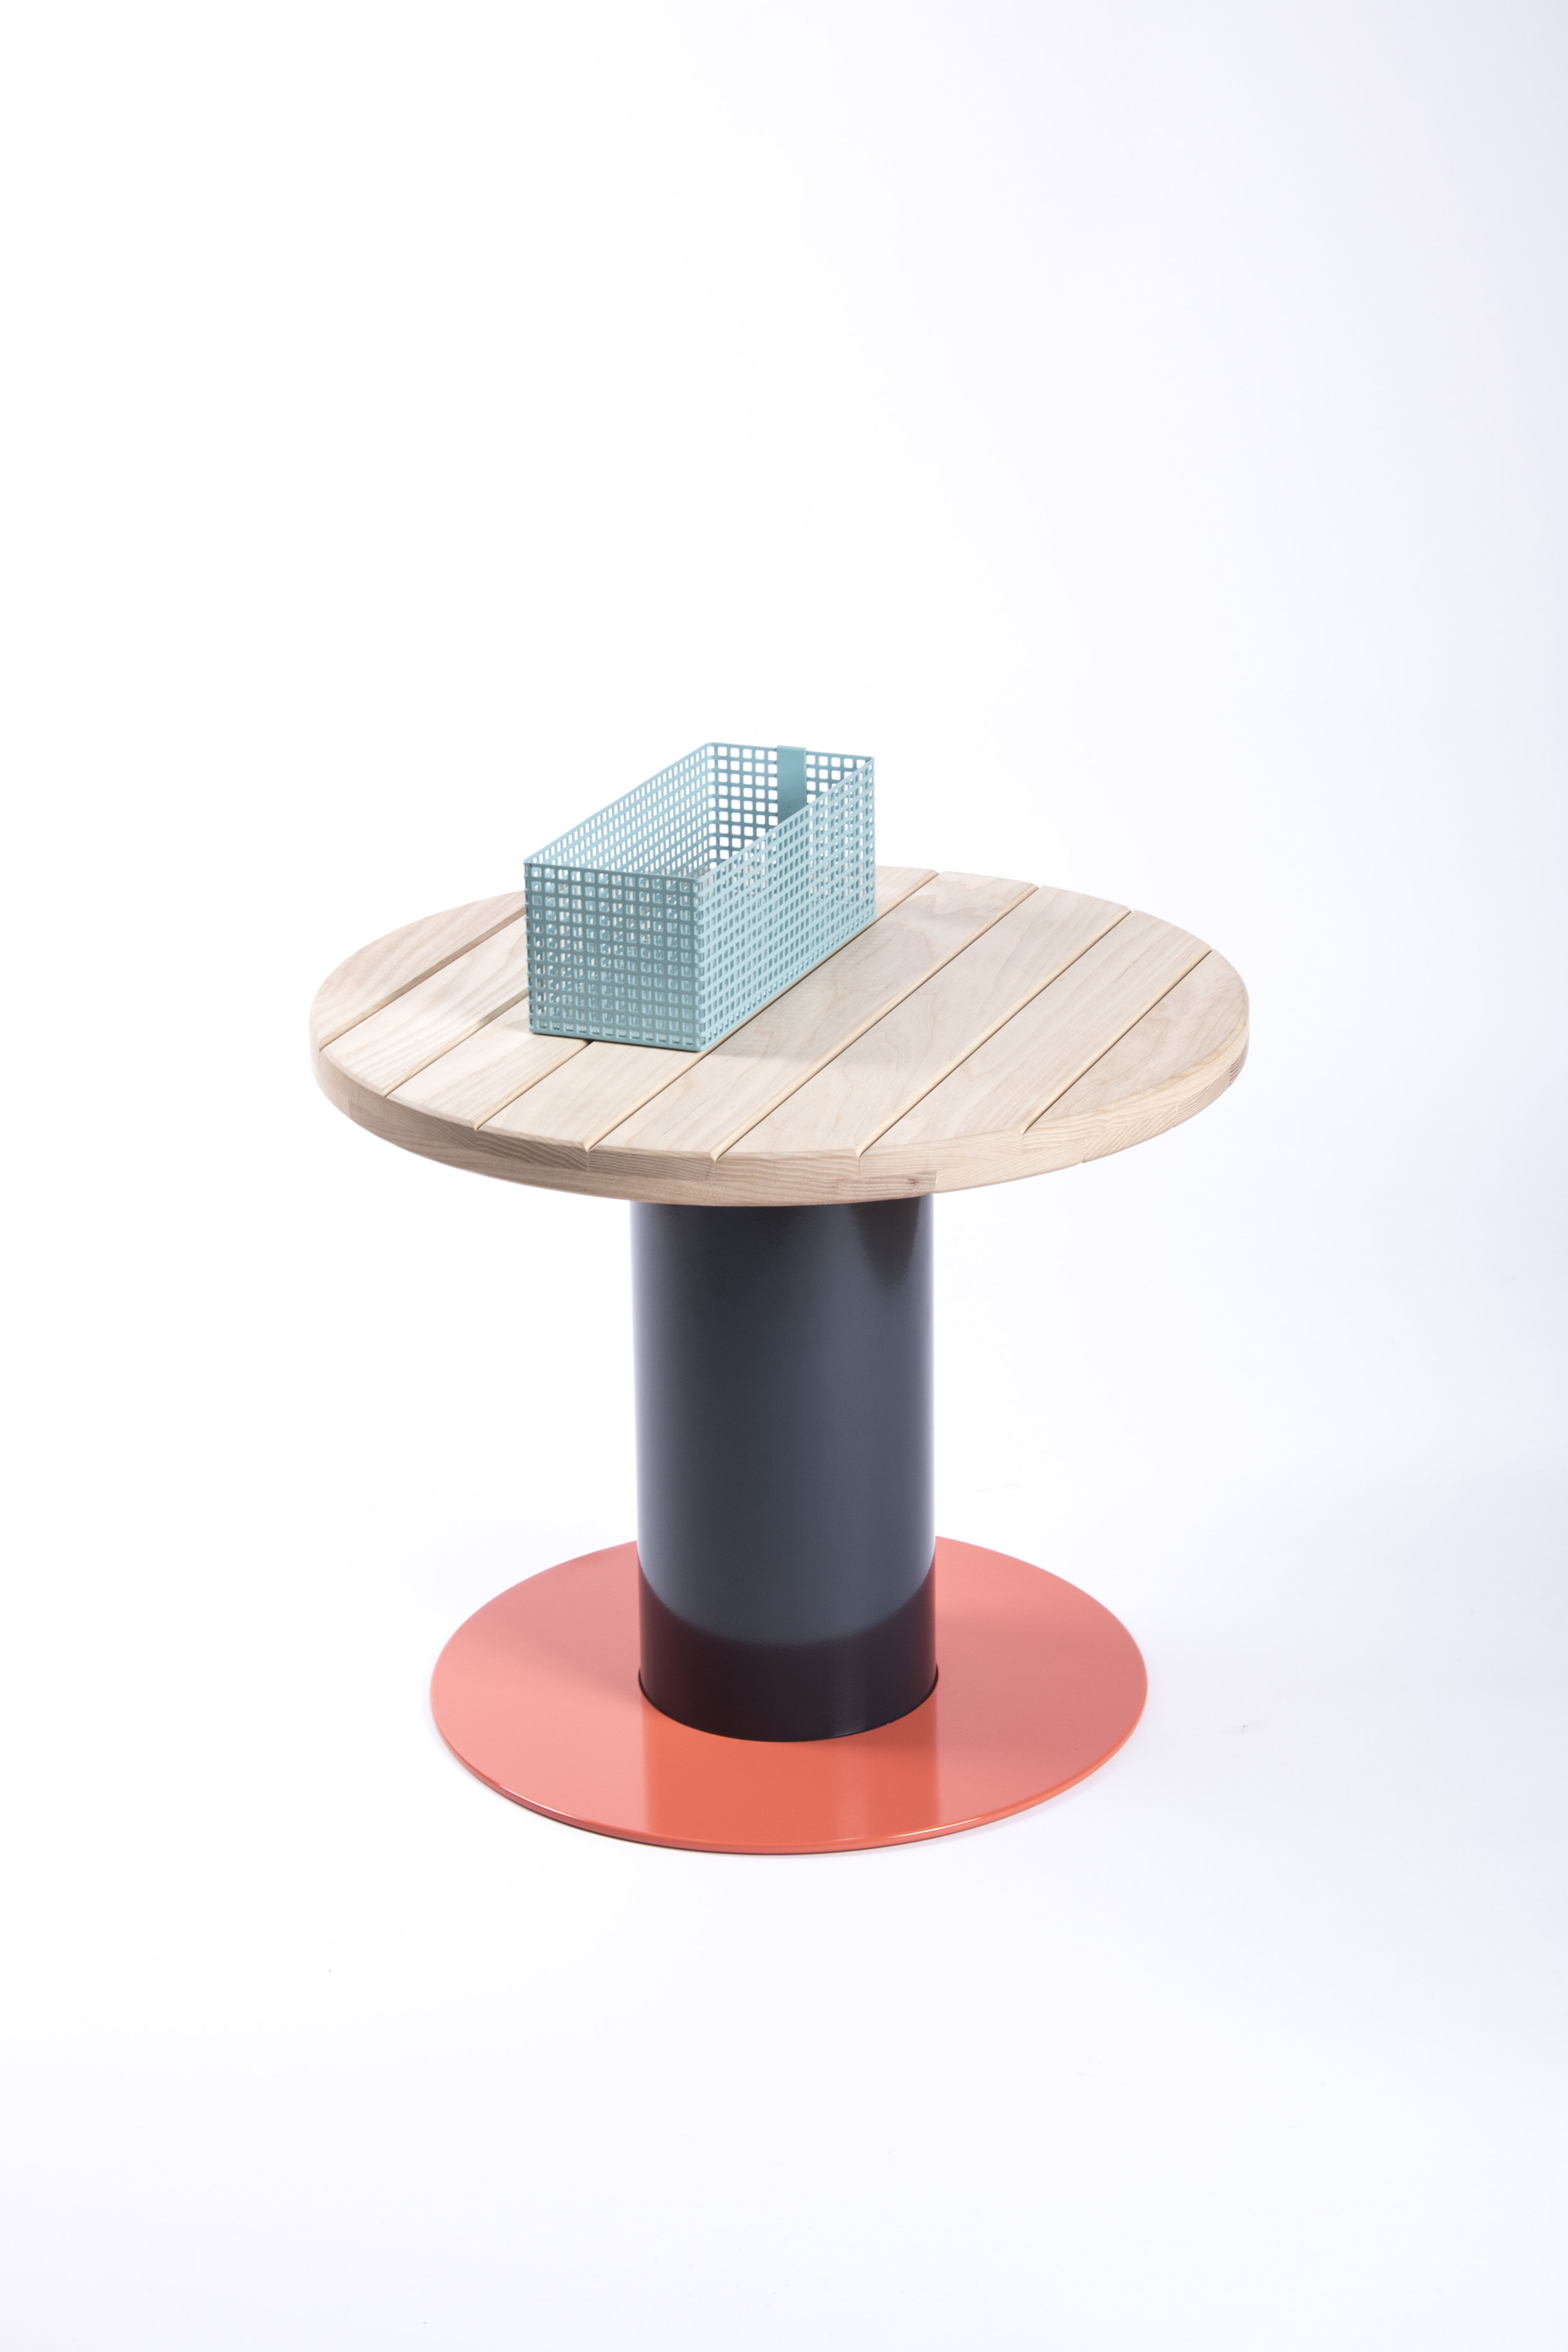 Reel Side Tables - David Derksen Design02.jpg